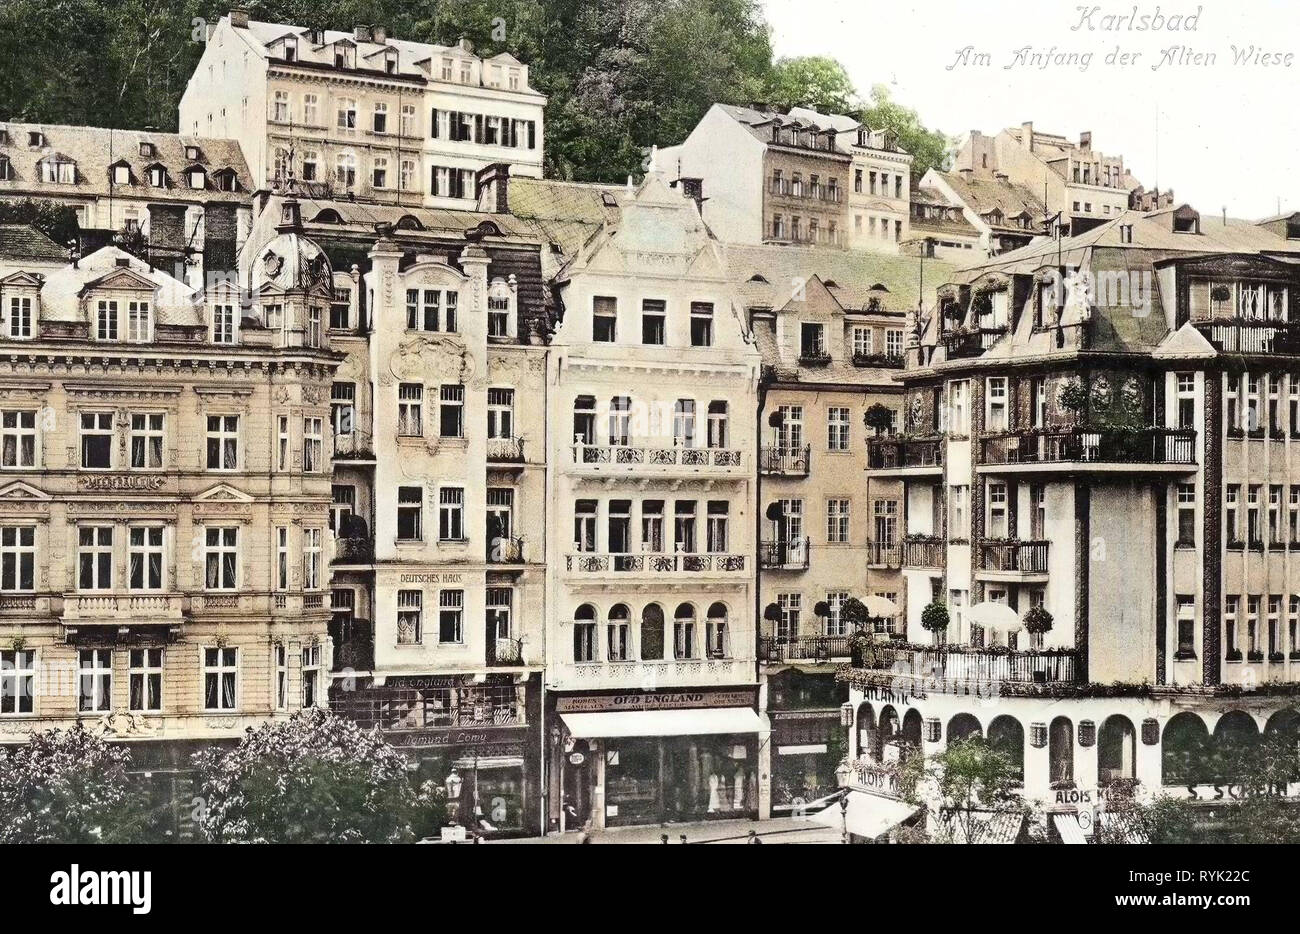 Buildings in Karlovy Vary, 1913, Karlovy Vary Region, Karlsbad, Alte Wiese, Czech Republic - Stock Image